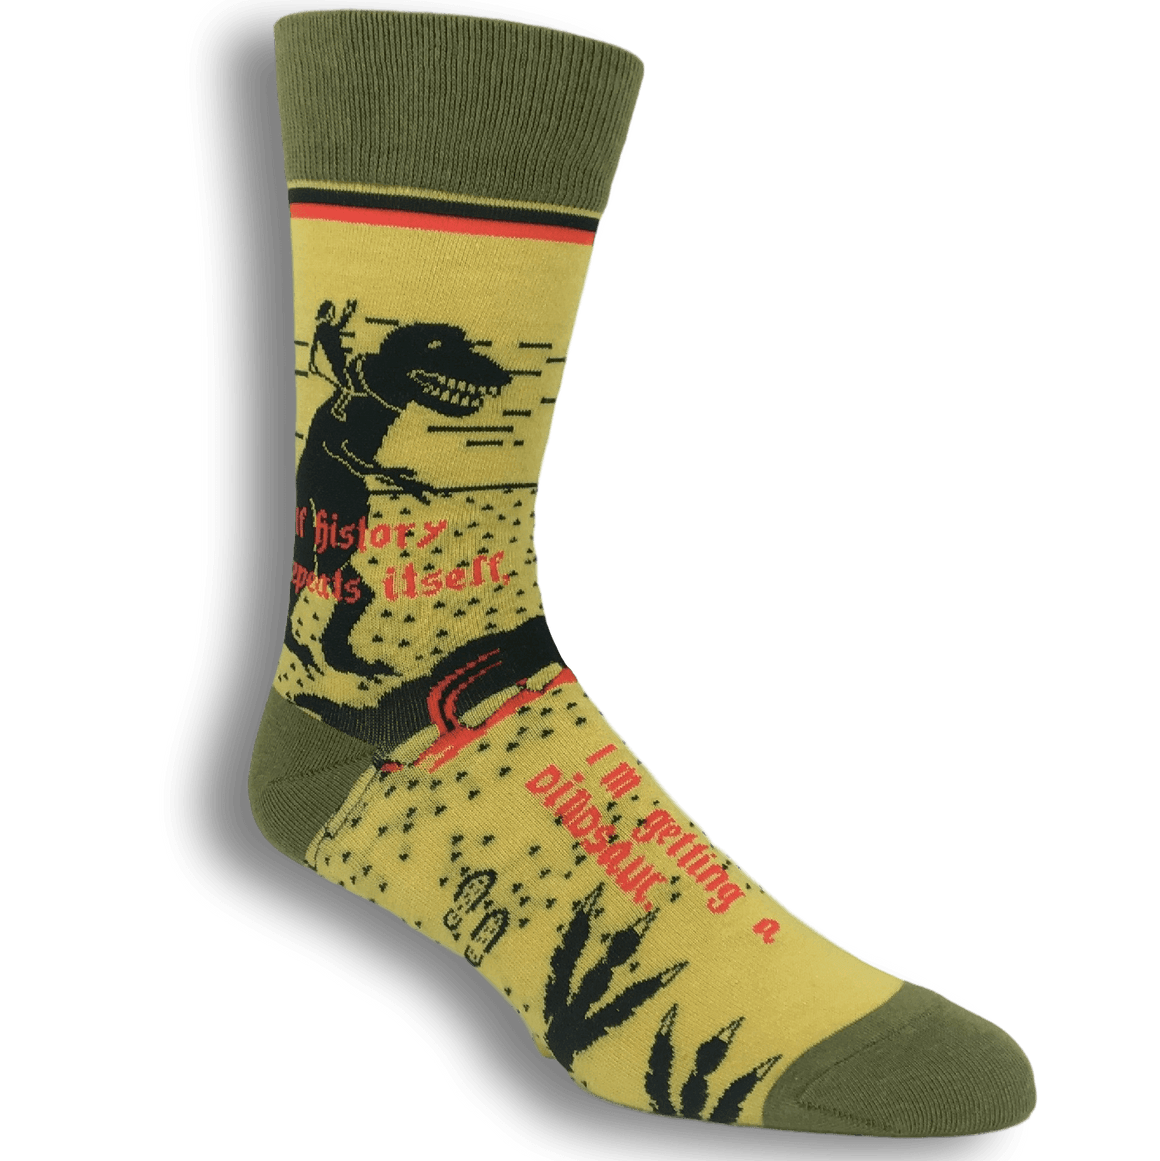 If History Repeats Itself Dinosaur Socks by Funatic - The Sock Spot